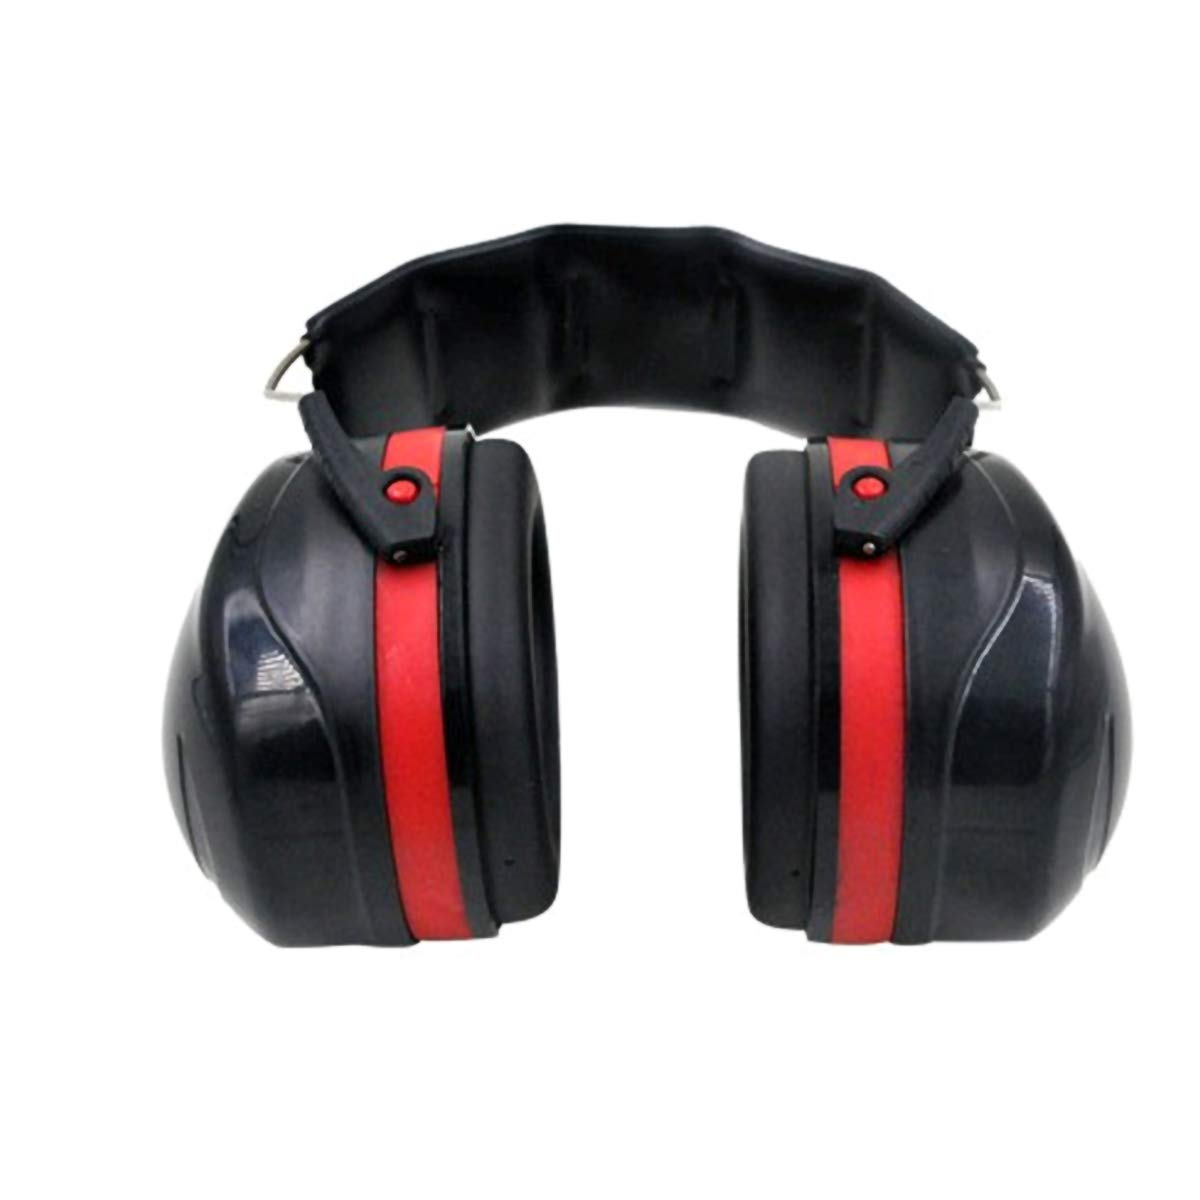 2TRIDENTS Sound-Proof Earmuffs Noise Reducing Ear Protection Headwear for Outdoor Activities Shooting Hunting (Red) by 2TRIDENTS